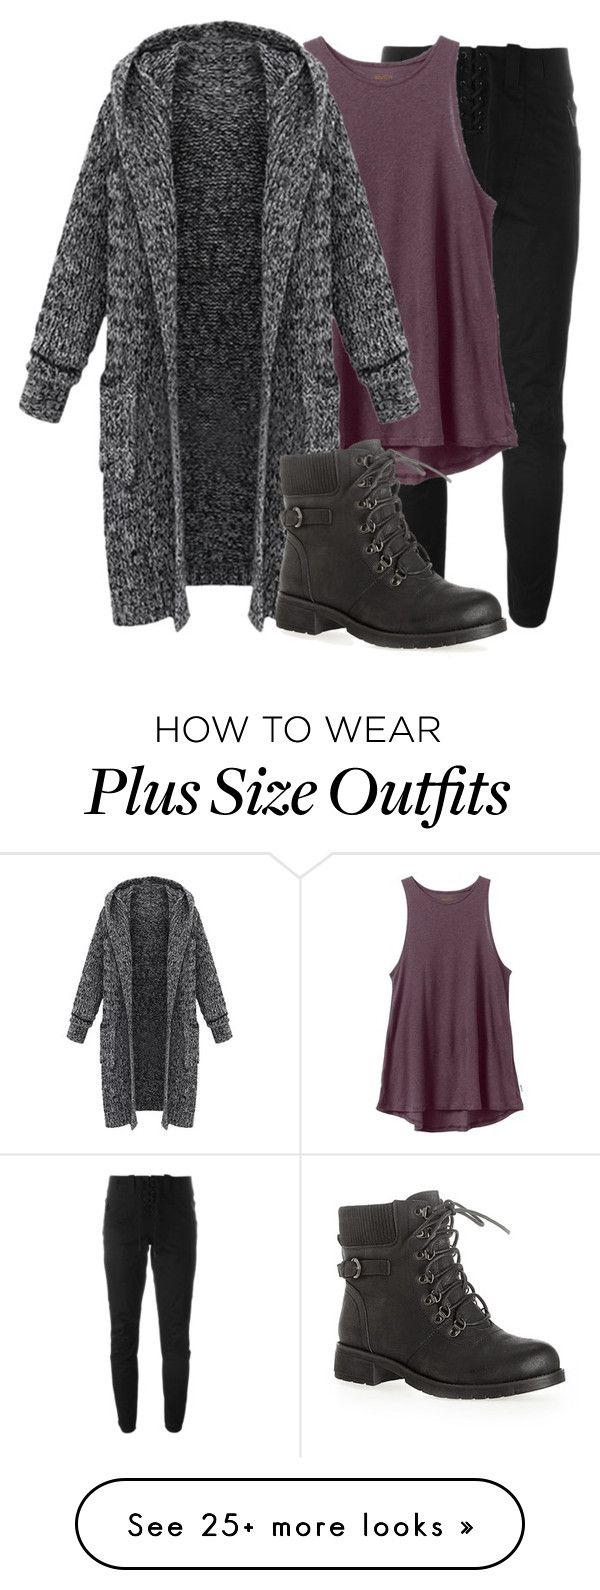 25 casual plus size winter outfits you have to try 2 - 25-casual-plus-size-winter-outfits-you-have-to-try-2